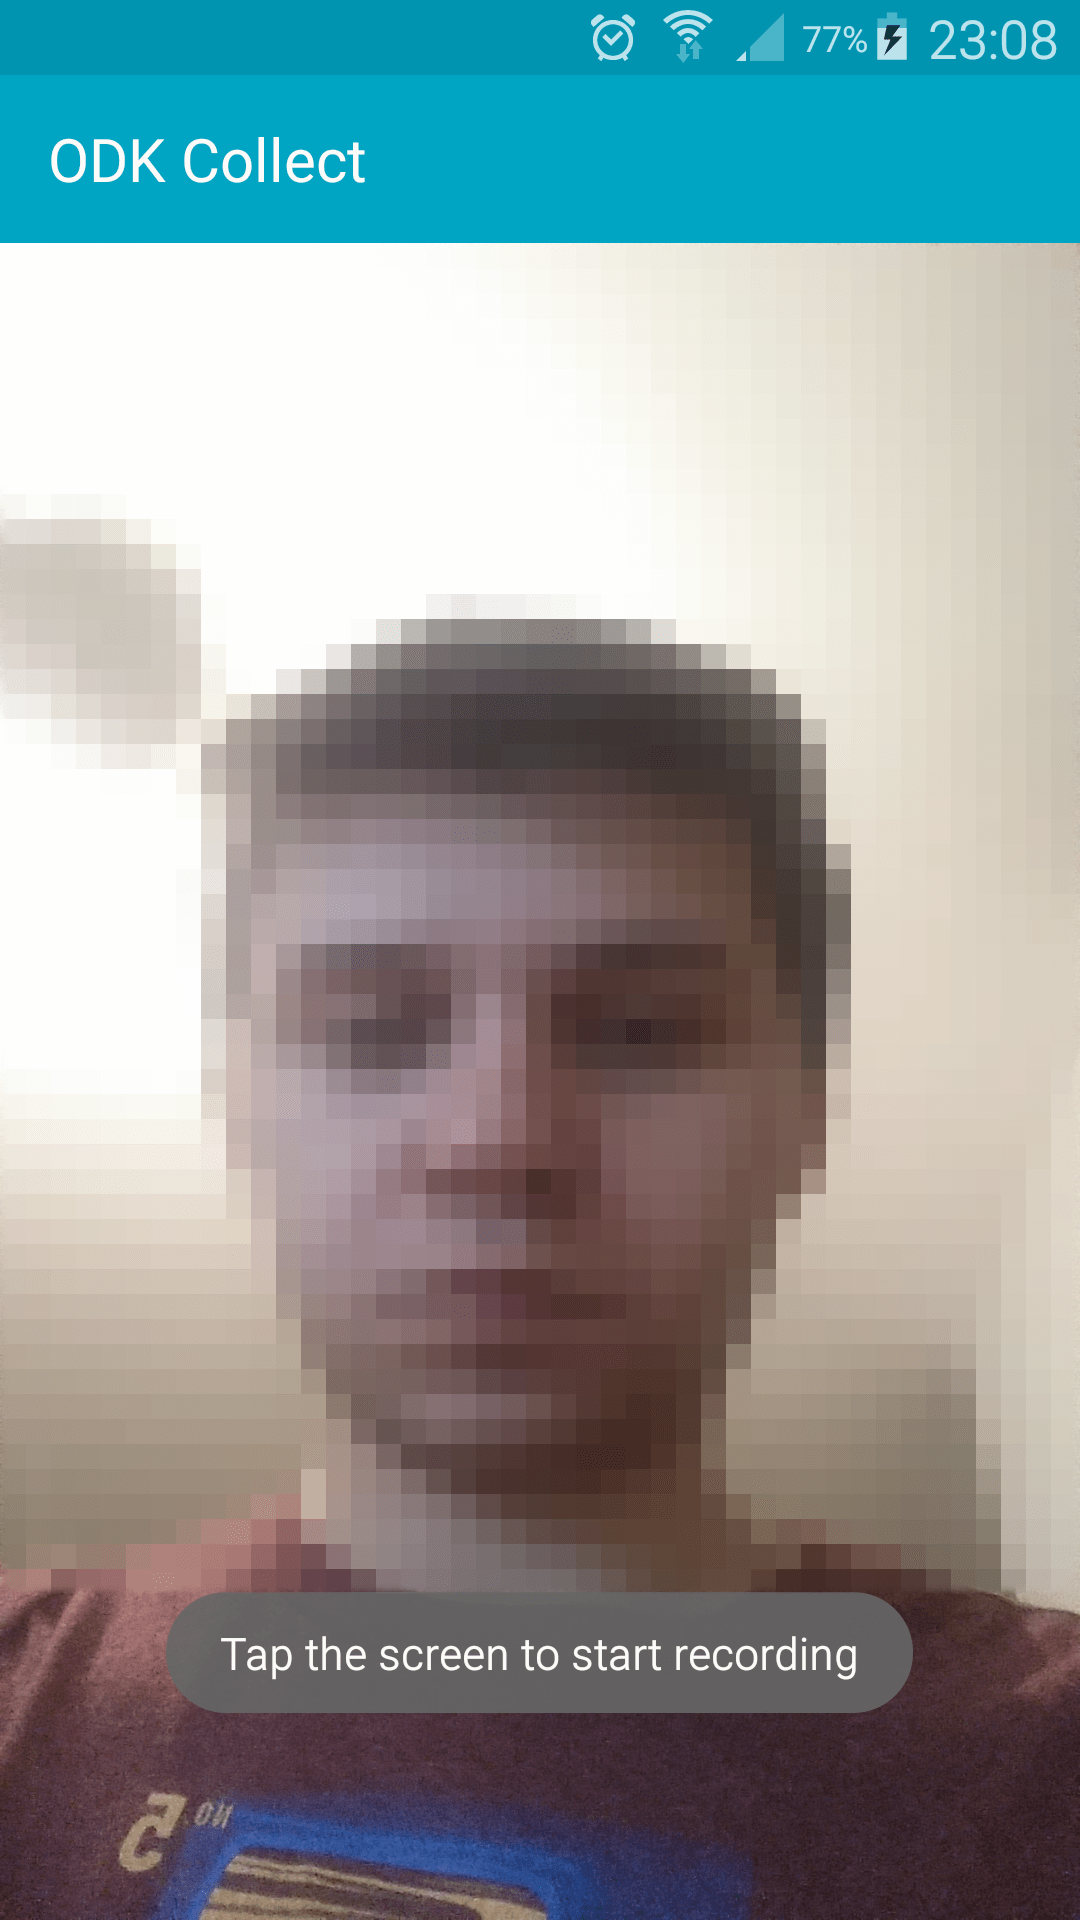 The camera view with a person's face.